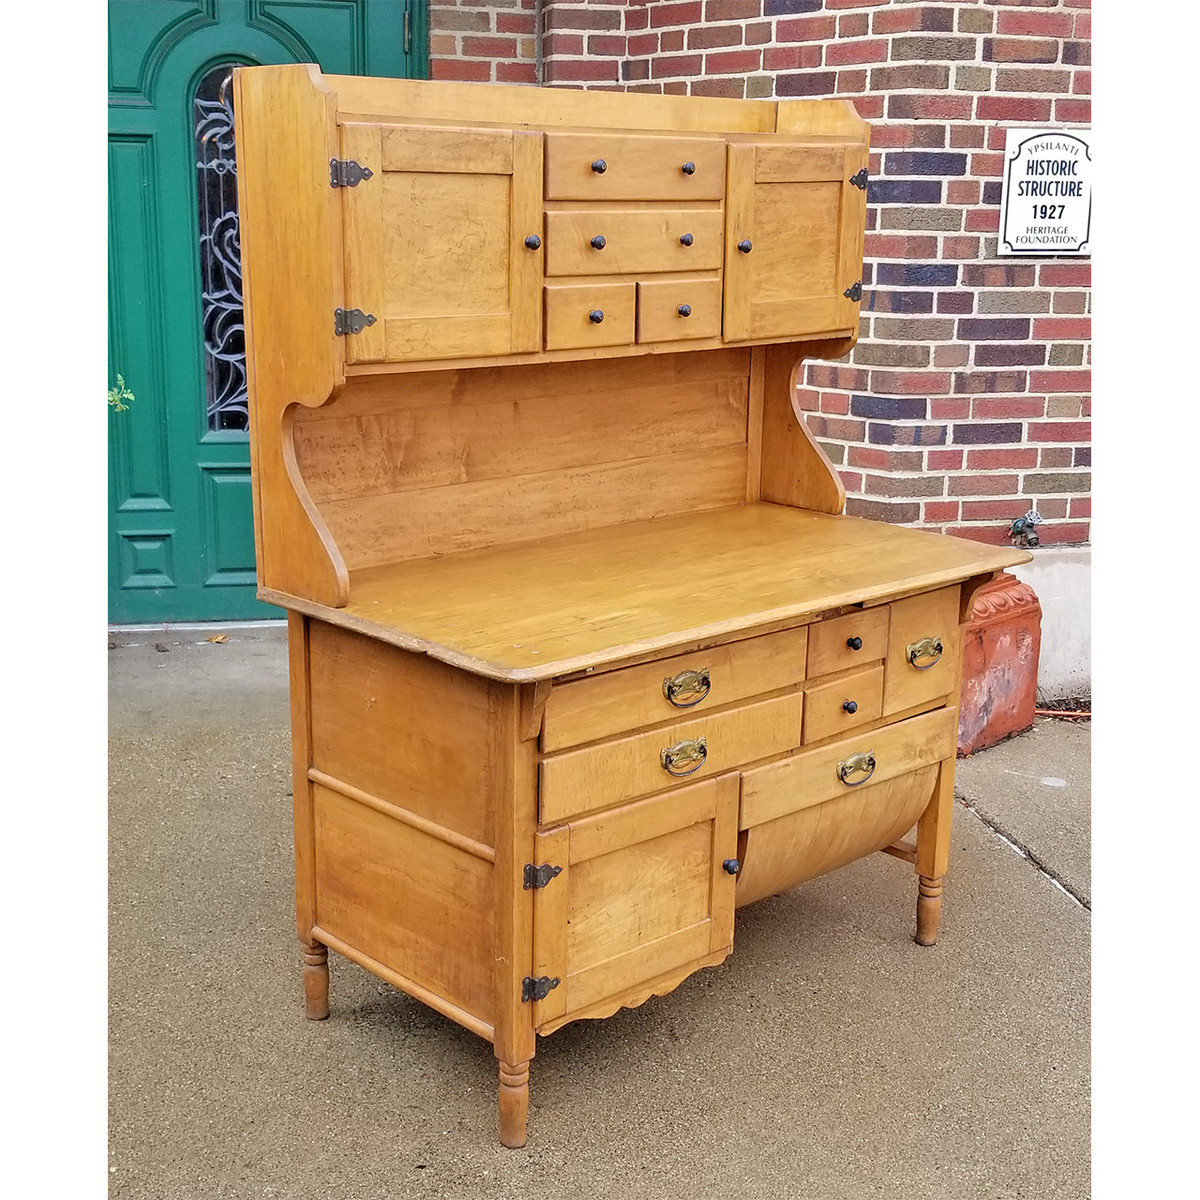 F18127 - Antique Maple Bakers Cupboard